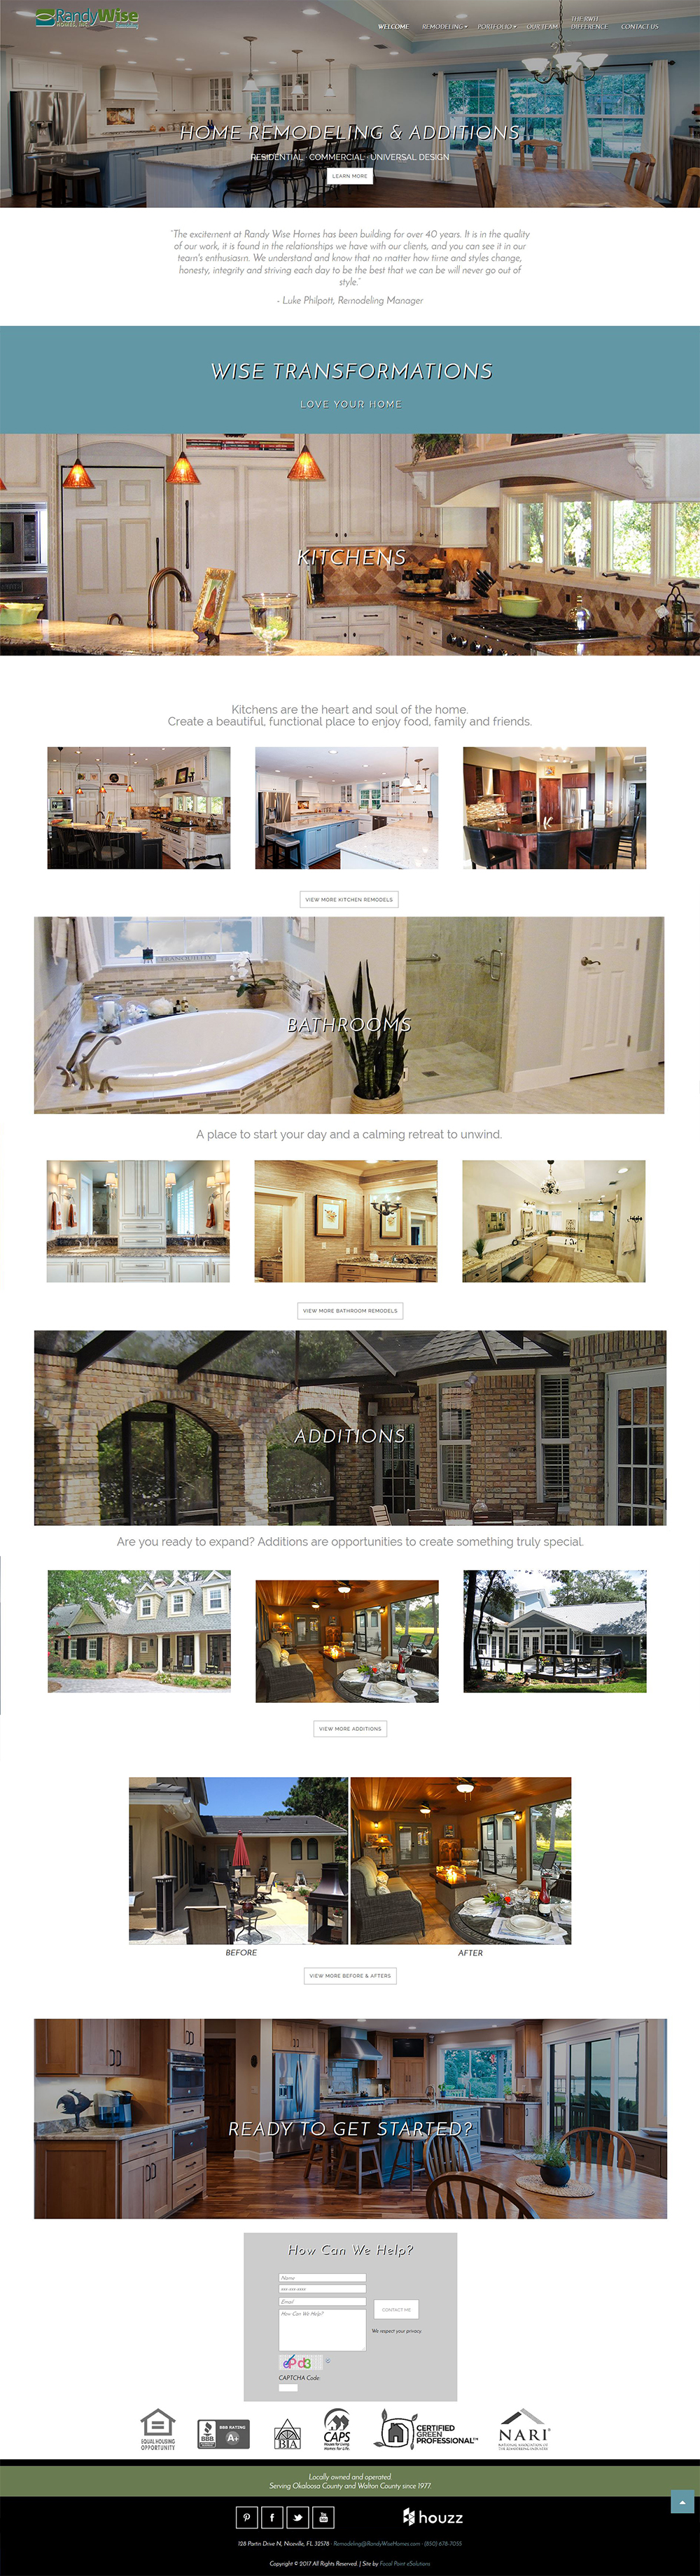 Randy Wise Homes Remodeling Website